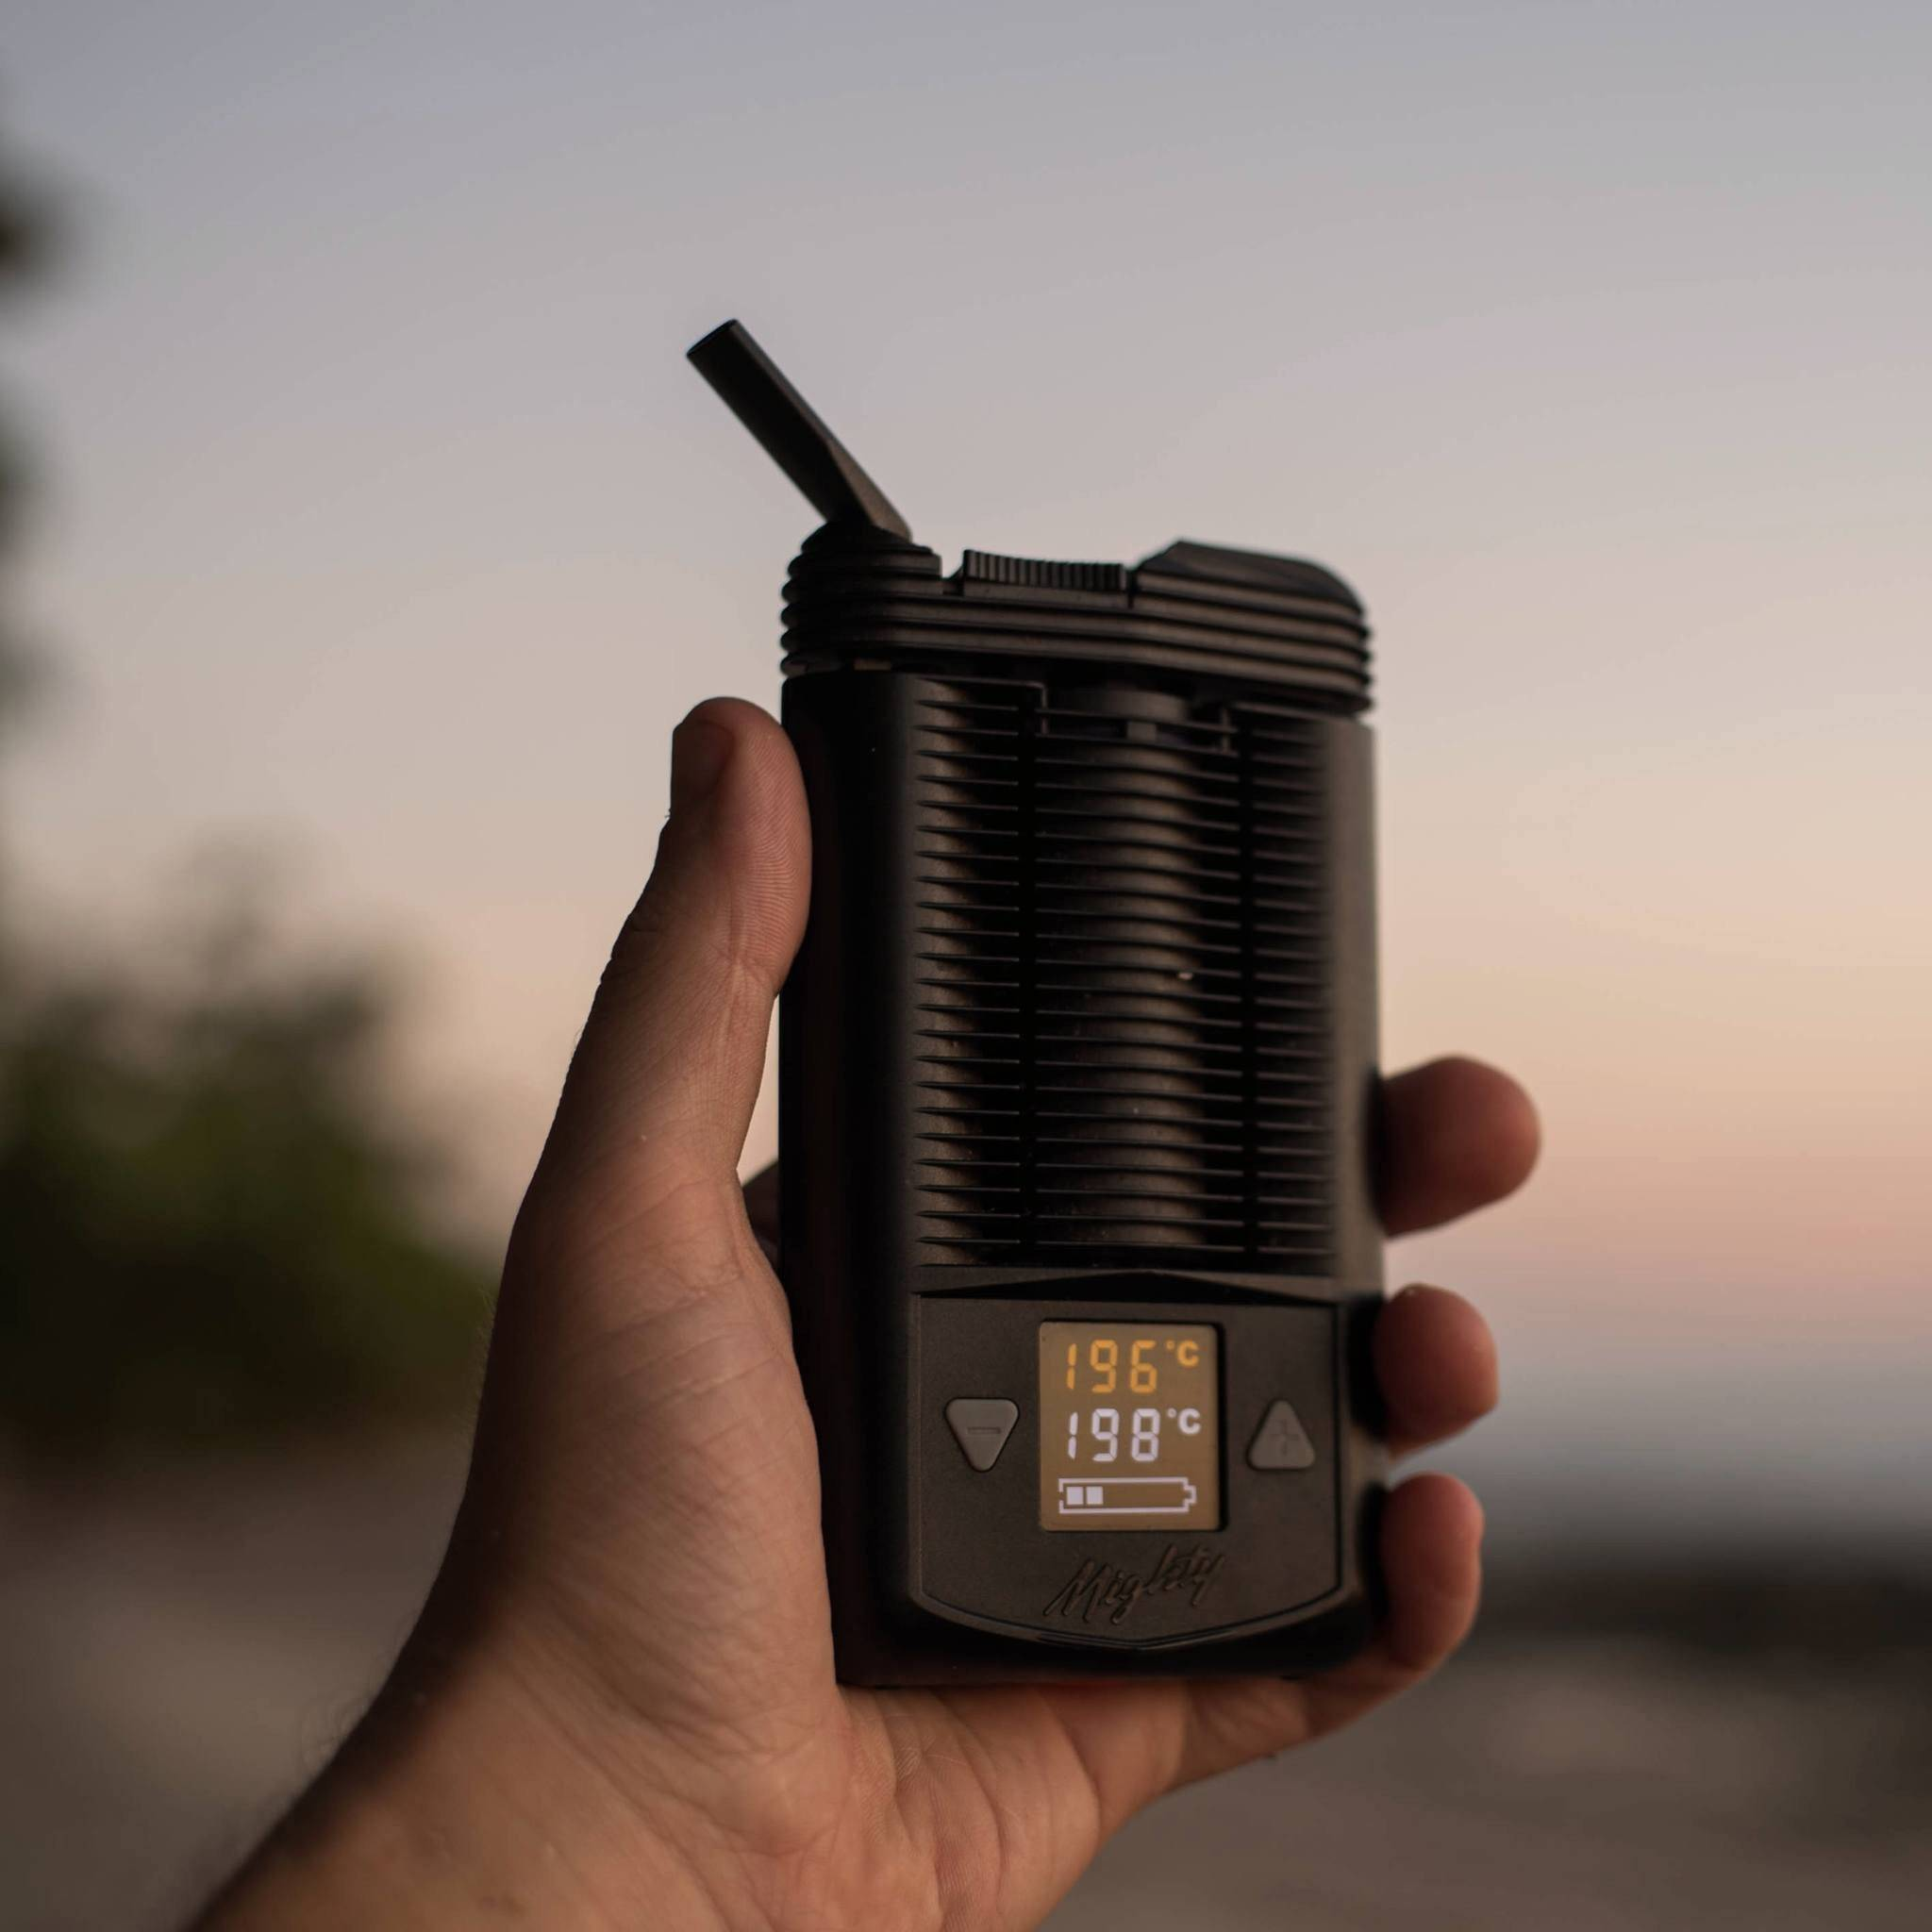 Shop Storz & Bickel Mighty Vaporizer at DopeBoo.com - Great for Nature Vacations on the Hiking Trails! Gen X Guide